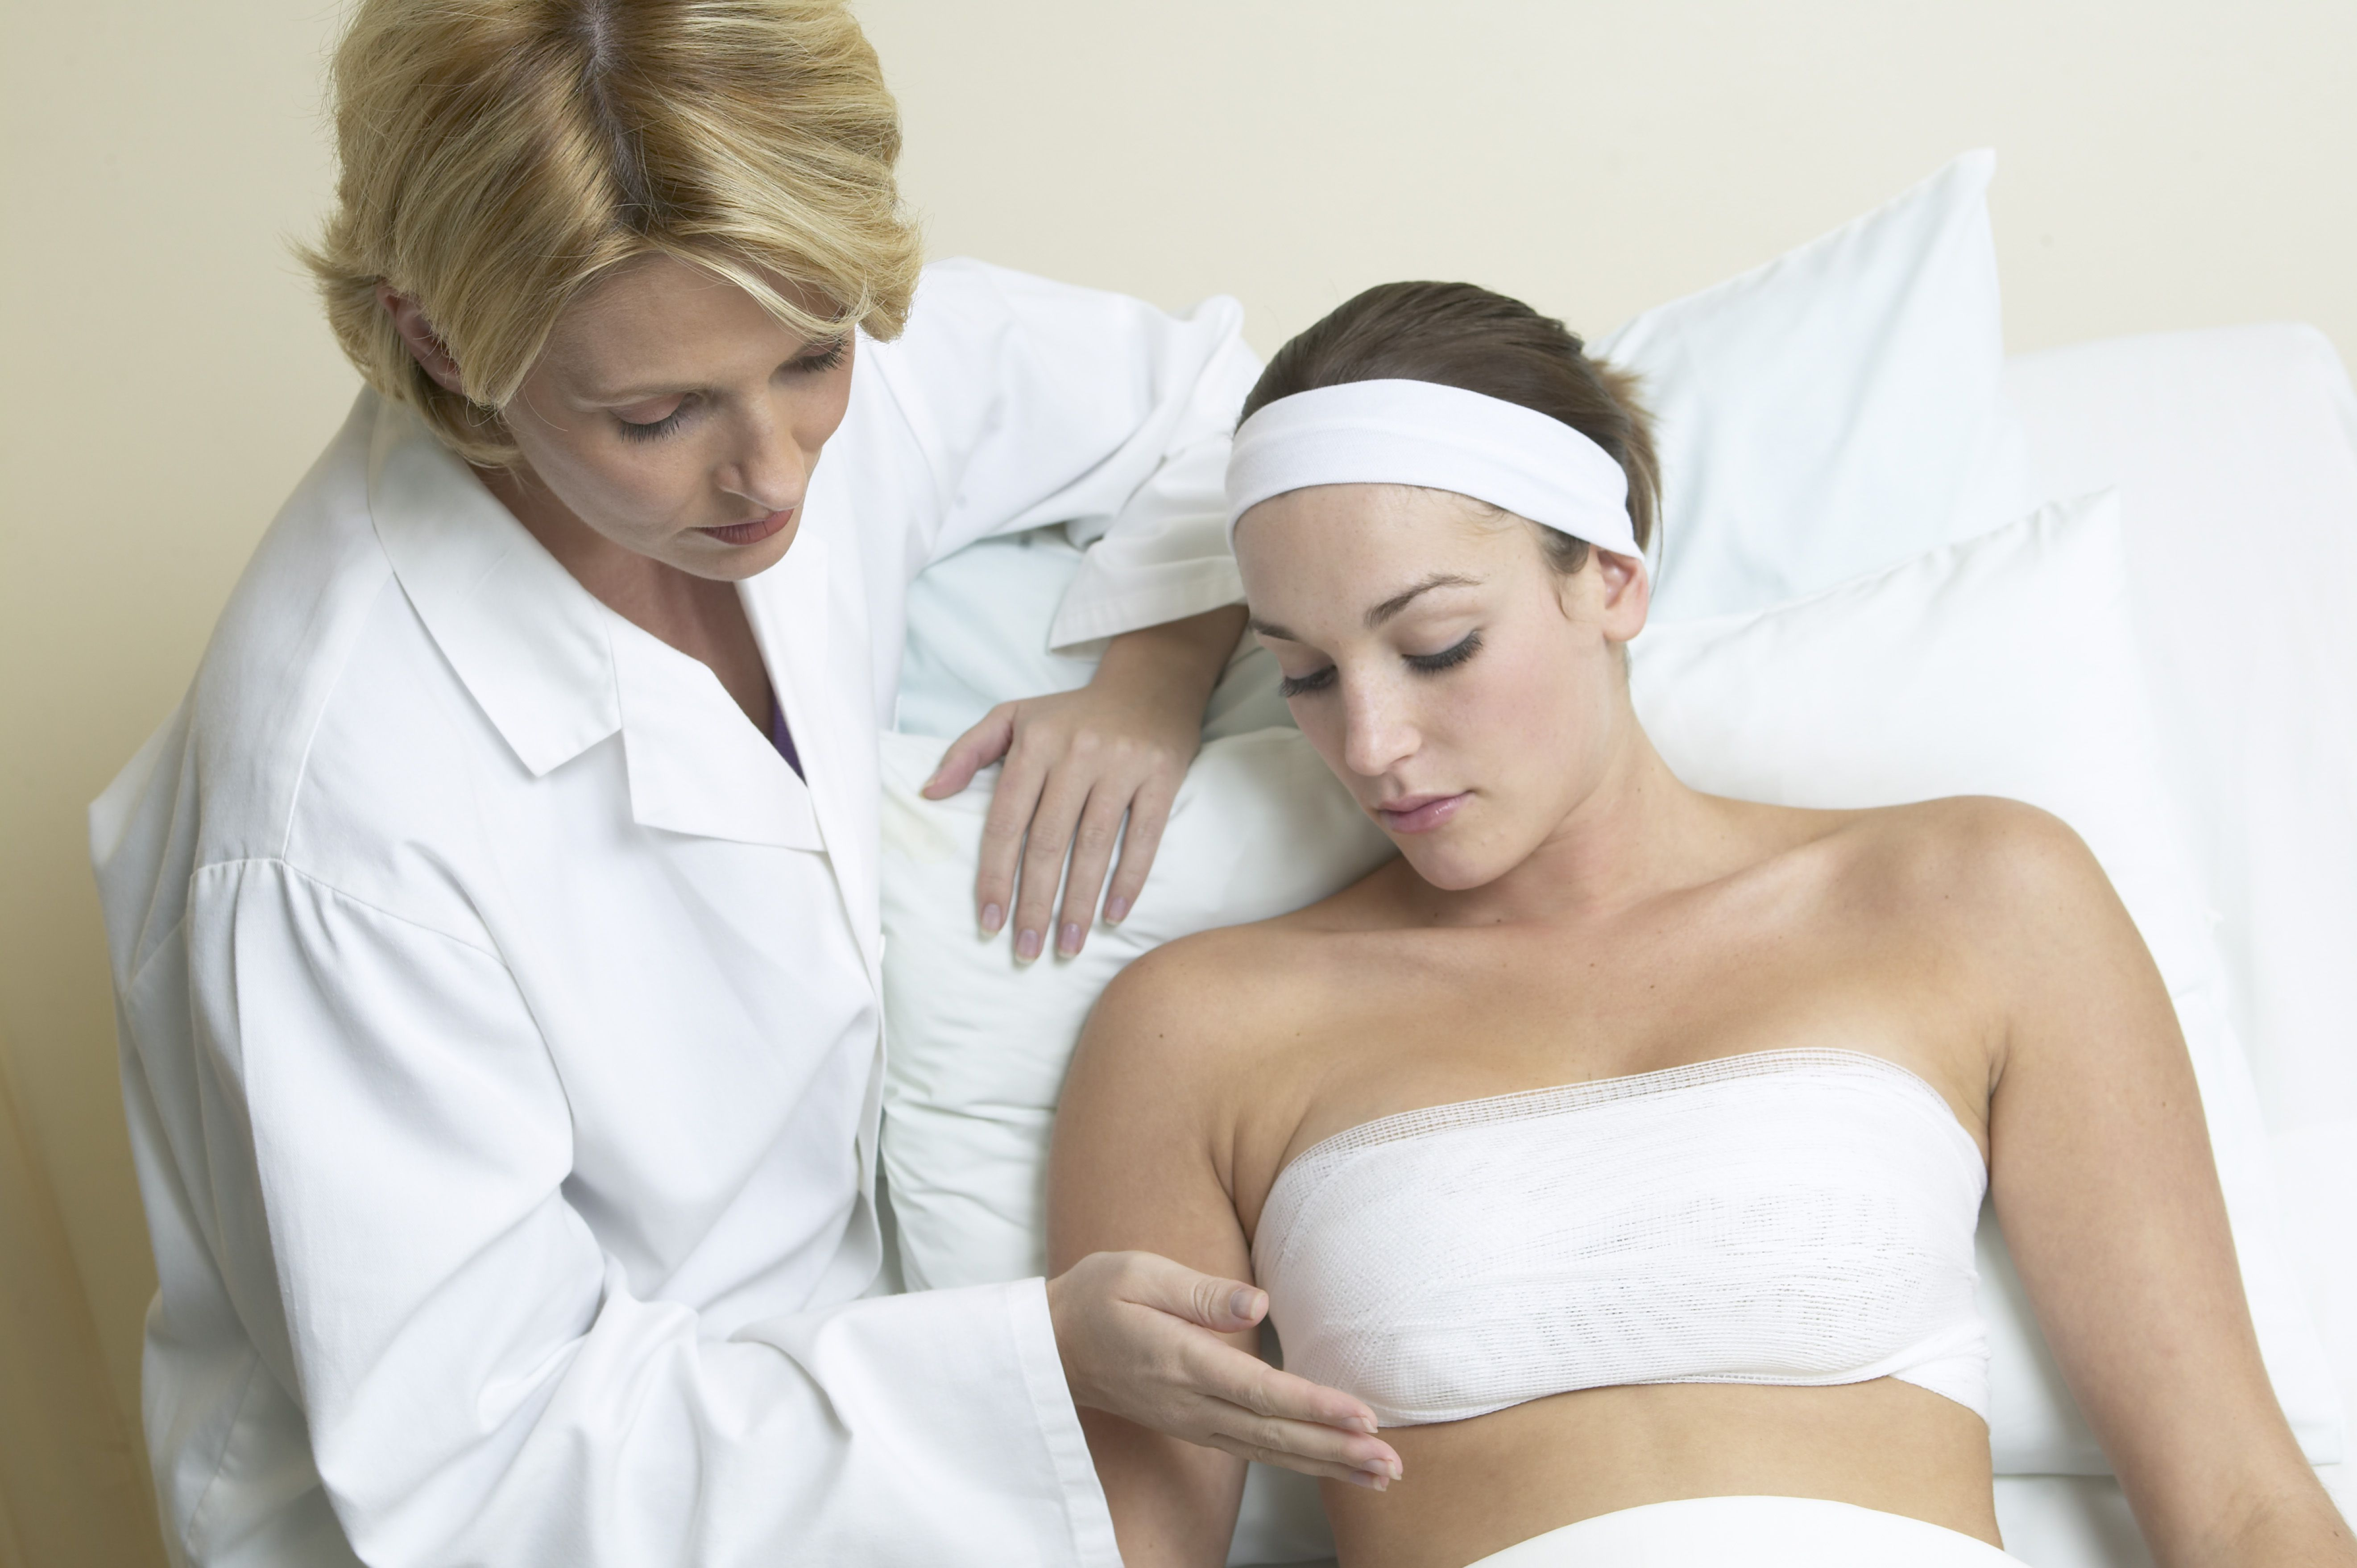 How a Capsulectomy Can Remove Hardened Scar Tissue From Breast Surgery